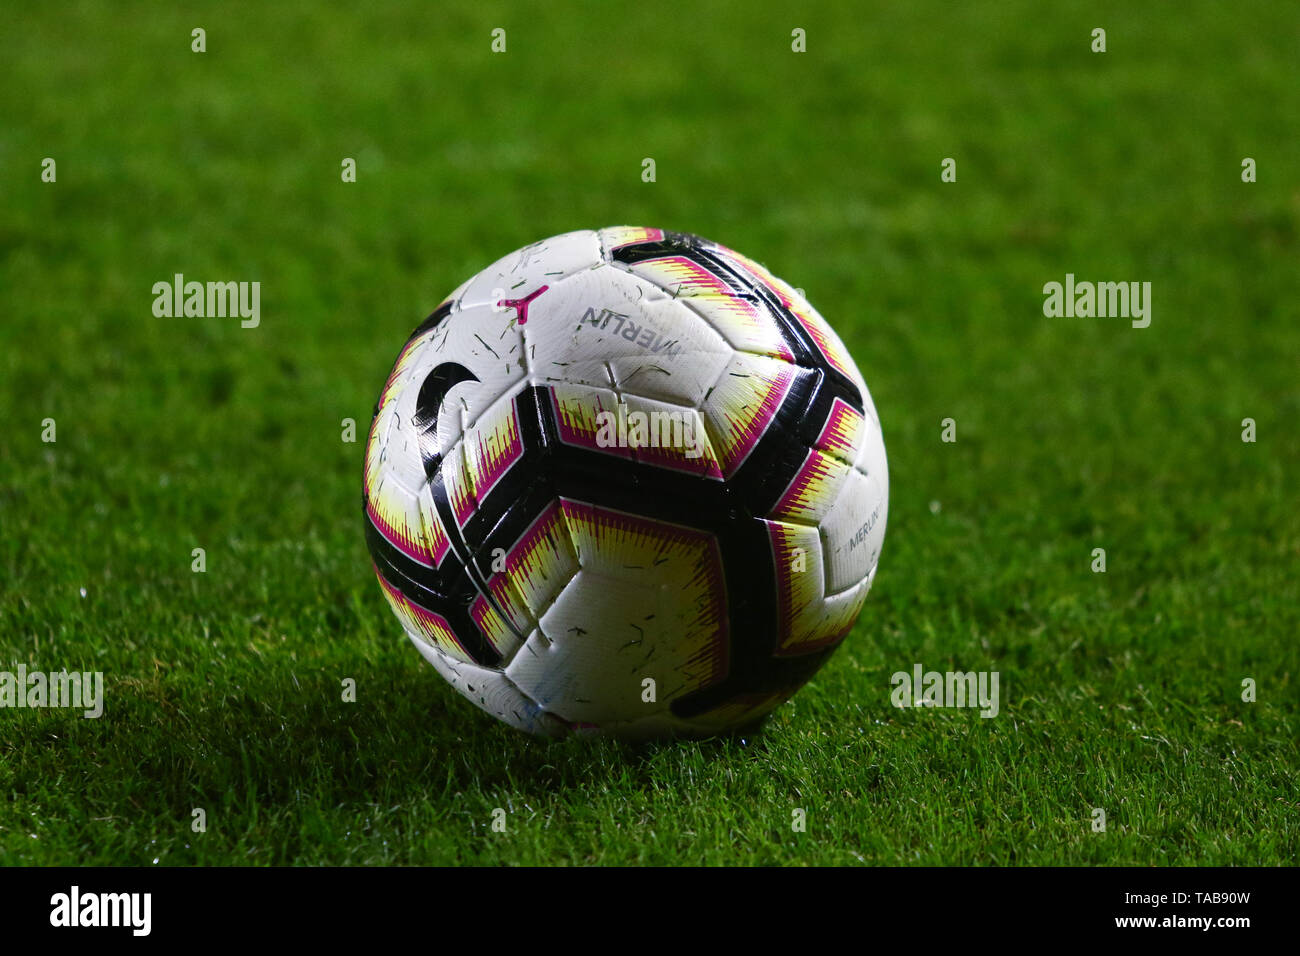 BUENOS AIRES, 23.05.2019: Official ball during the match between Argentinos Juniors and Deportes Tolima for the 2nd round of Conmebol Sudamericana Cup - Stock Image